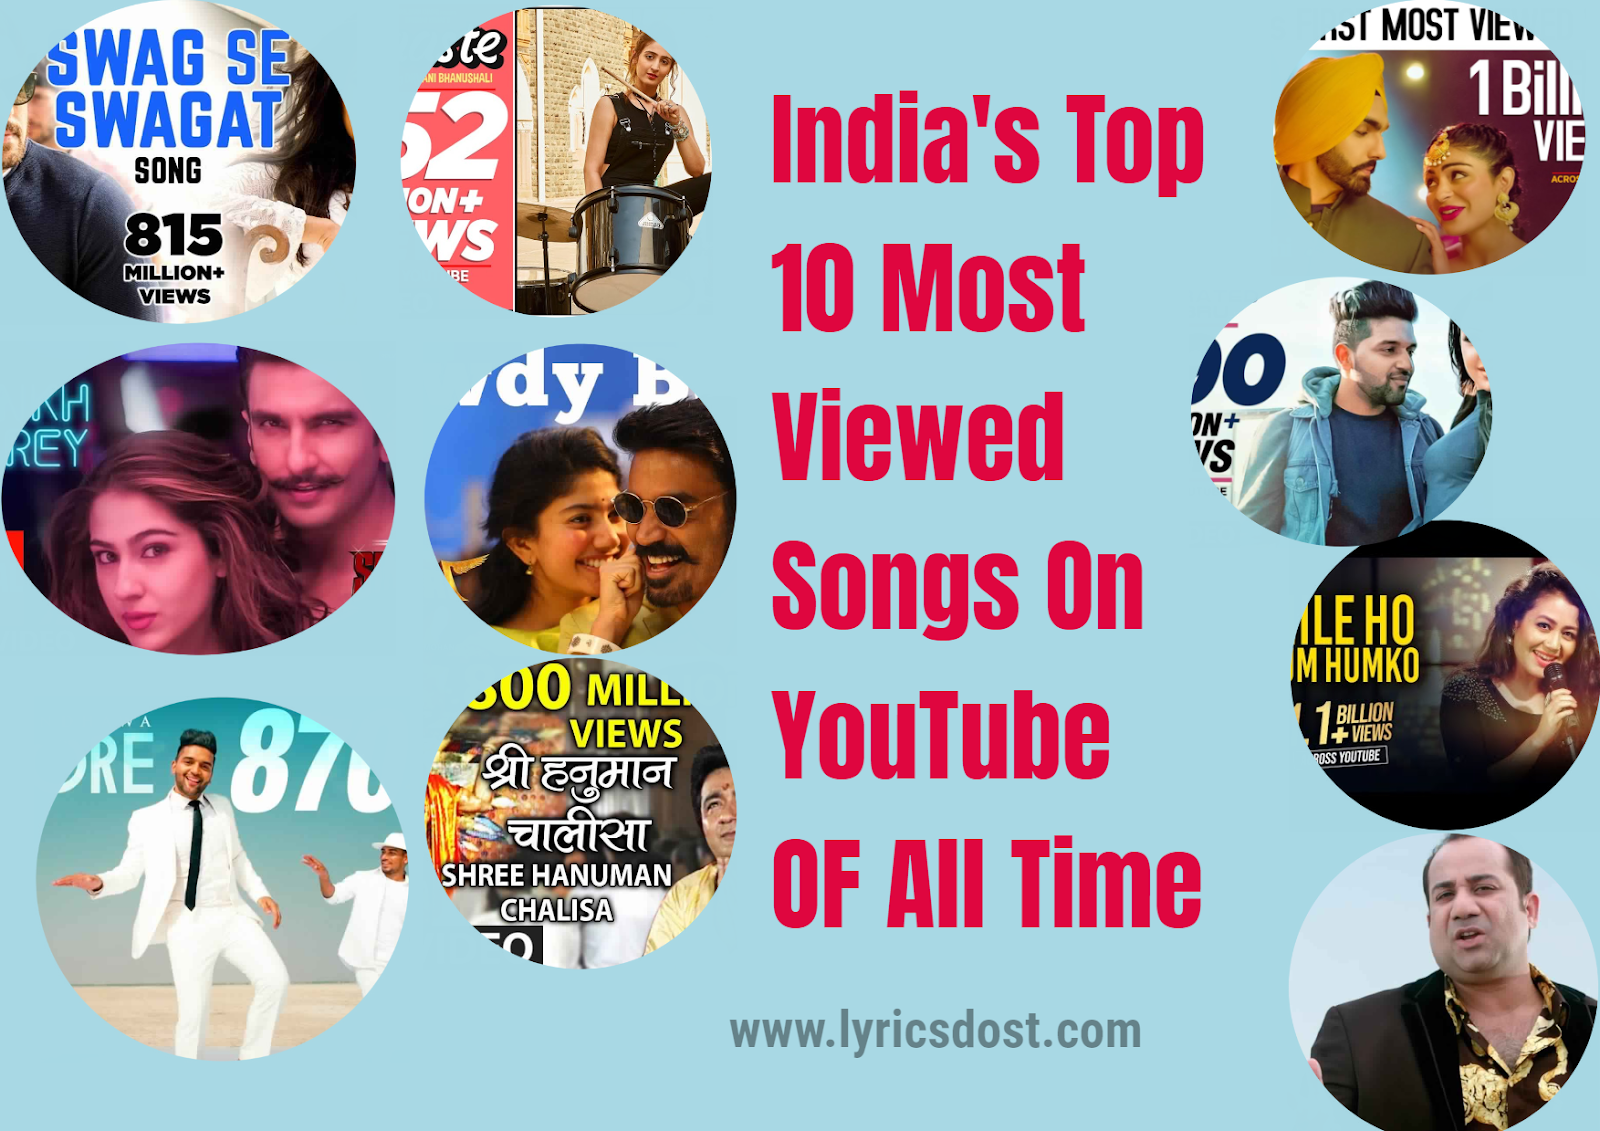 Top 10 Most Viewed Indian Songs On Youtube Top 10 Updated List 2020 By Lyricsdost Com Medium